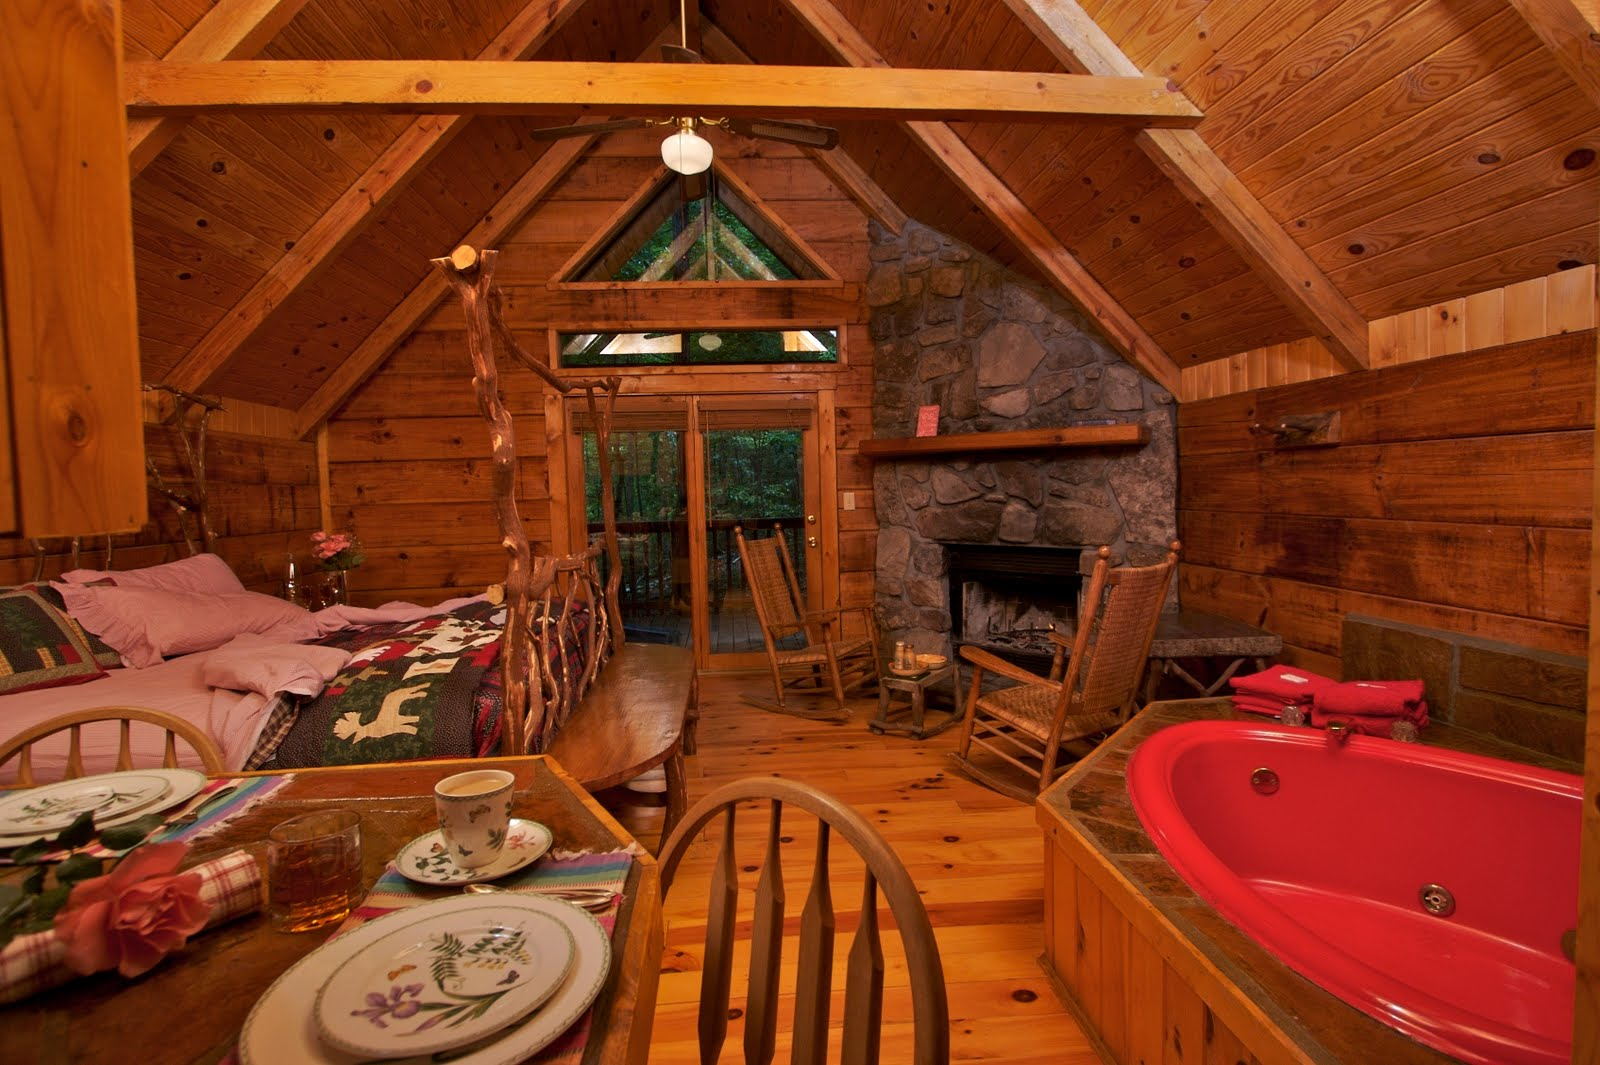 gatlinburg vacation cabins honeymoon privacy